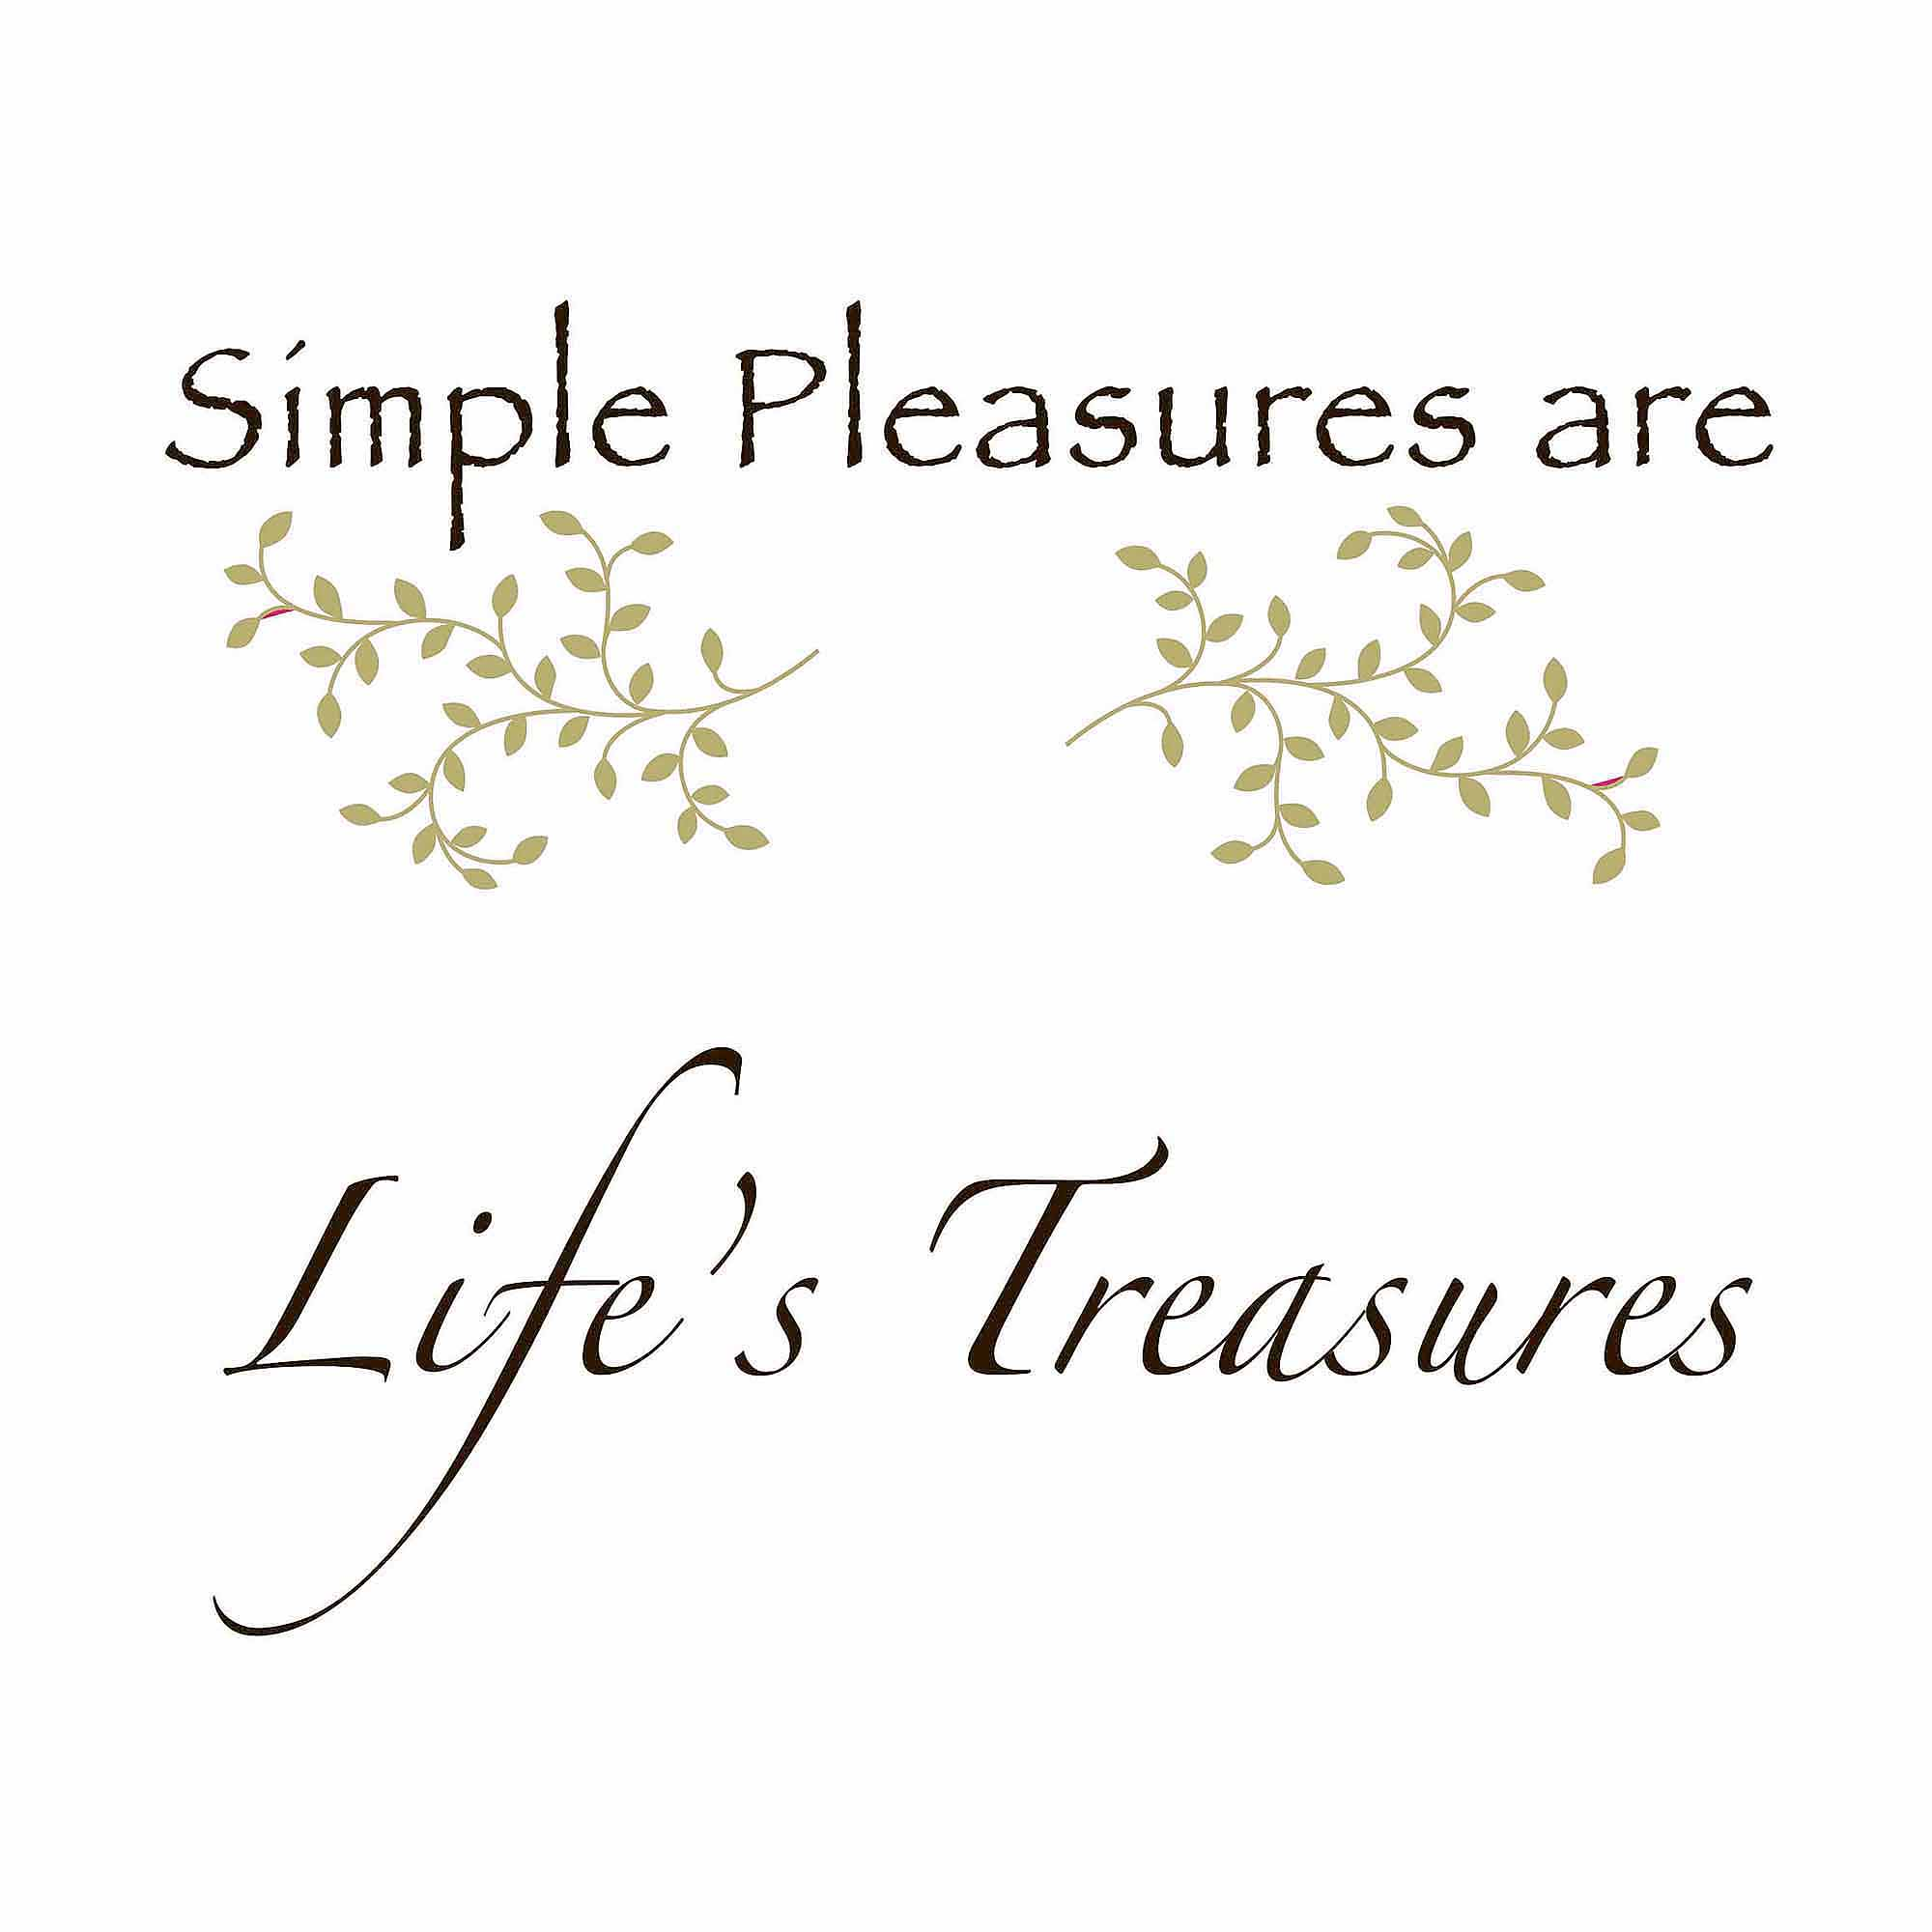 Lifes Treasures Quick Quote